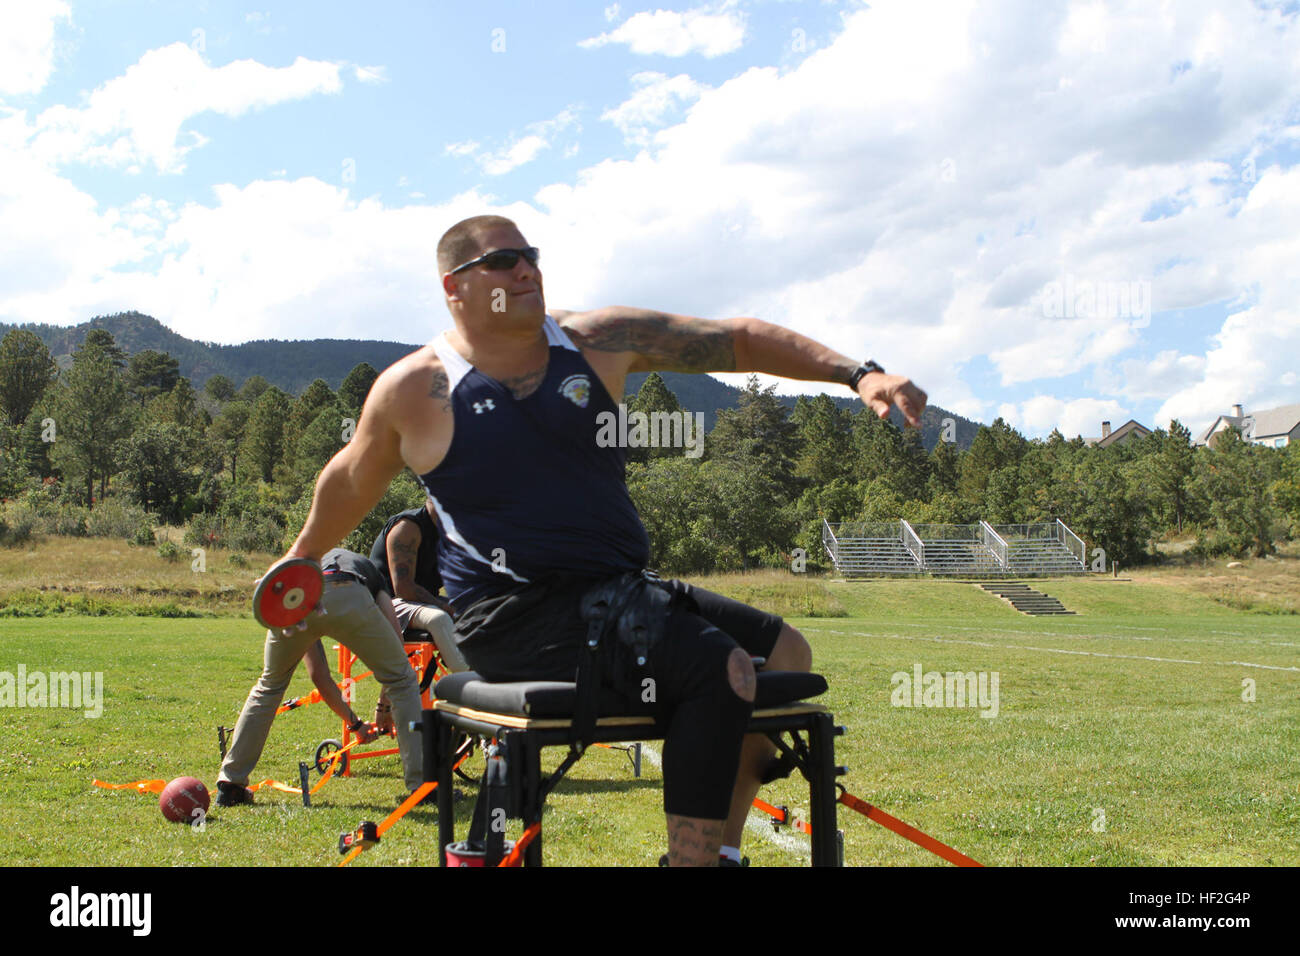 Sgt. Michael Wishnia, a native of Livingston, New Jersey, practices seated discus during the Marine team's field - Stock Image